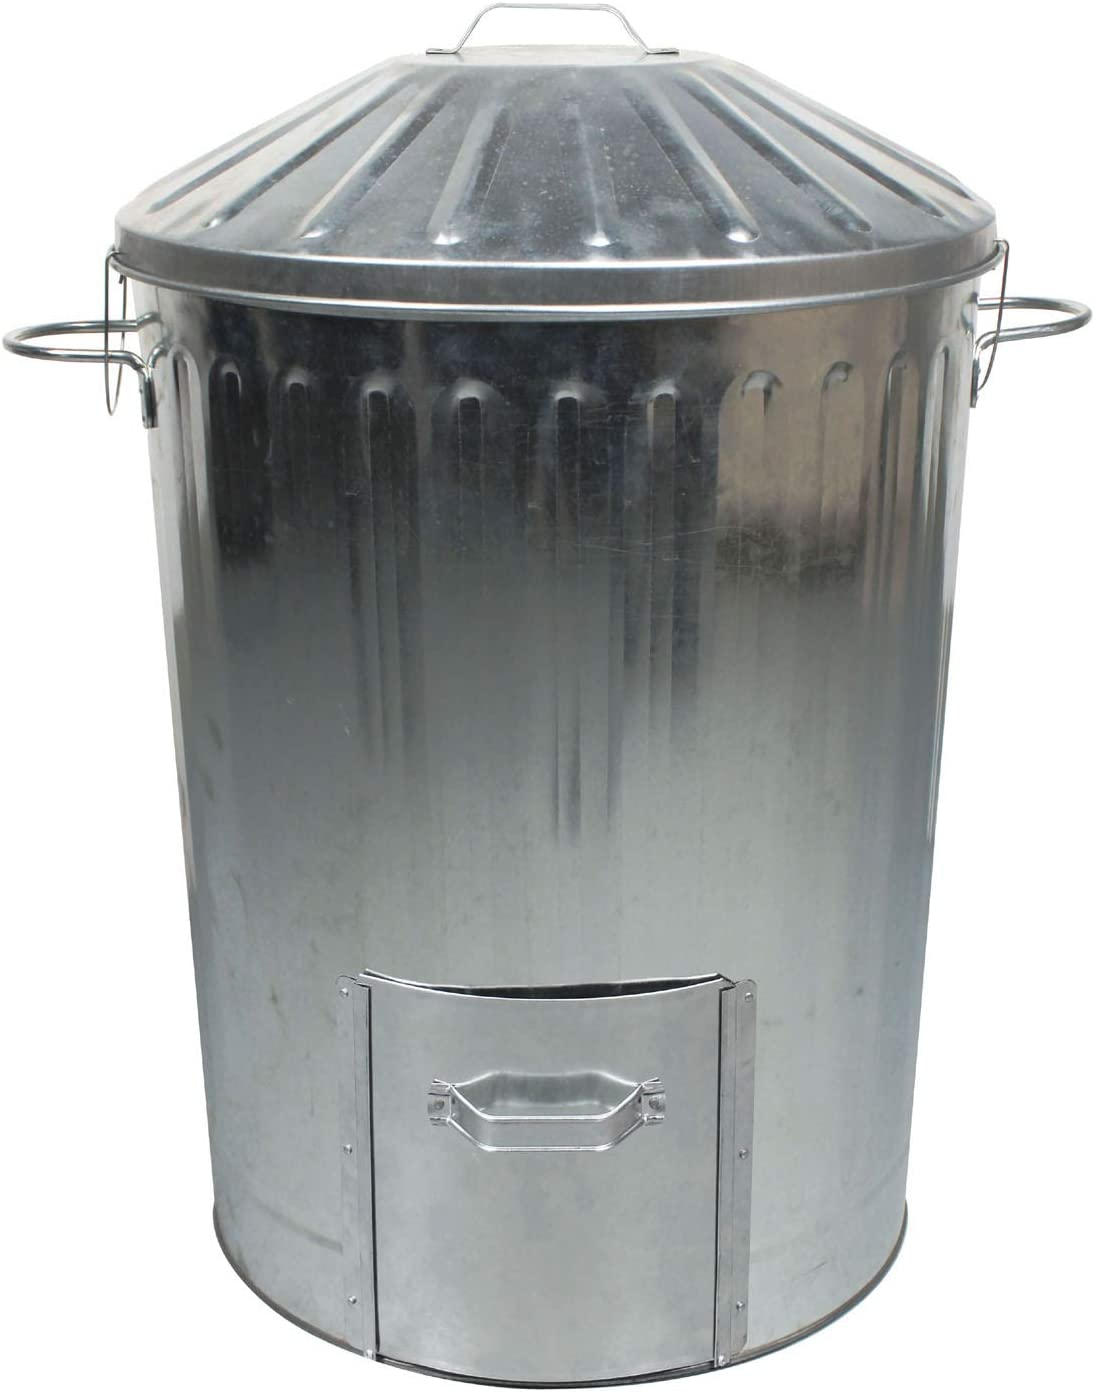 1 x 90L 90 Litre Galvanised Metal Dustbin with Door Hatch and Locking Lid - Garden Allotments Recycling Composter Bin